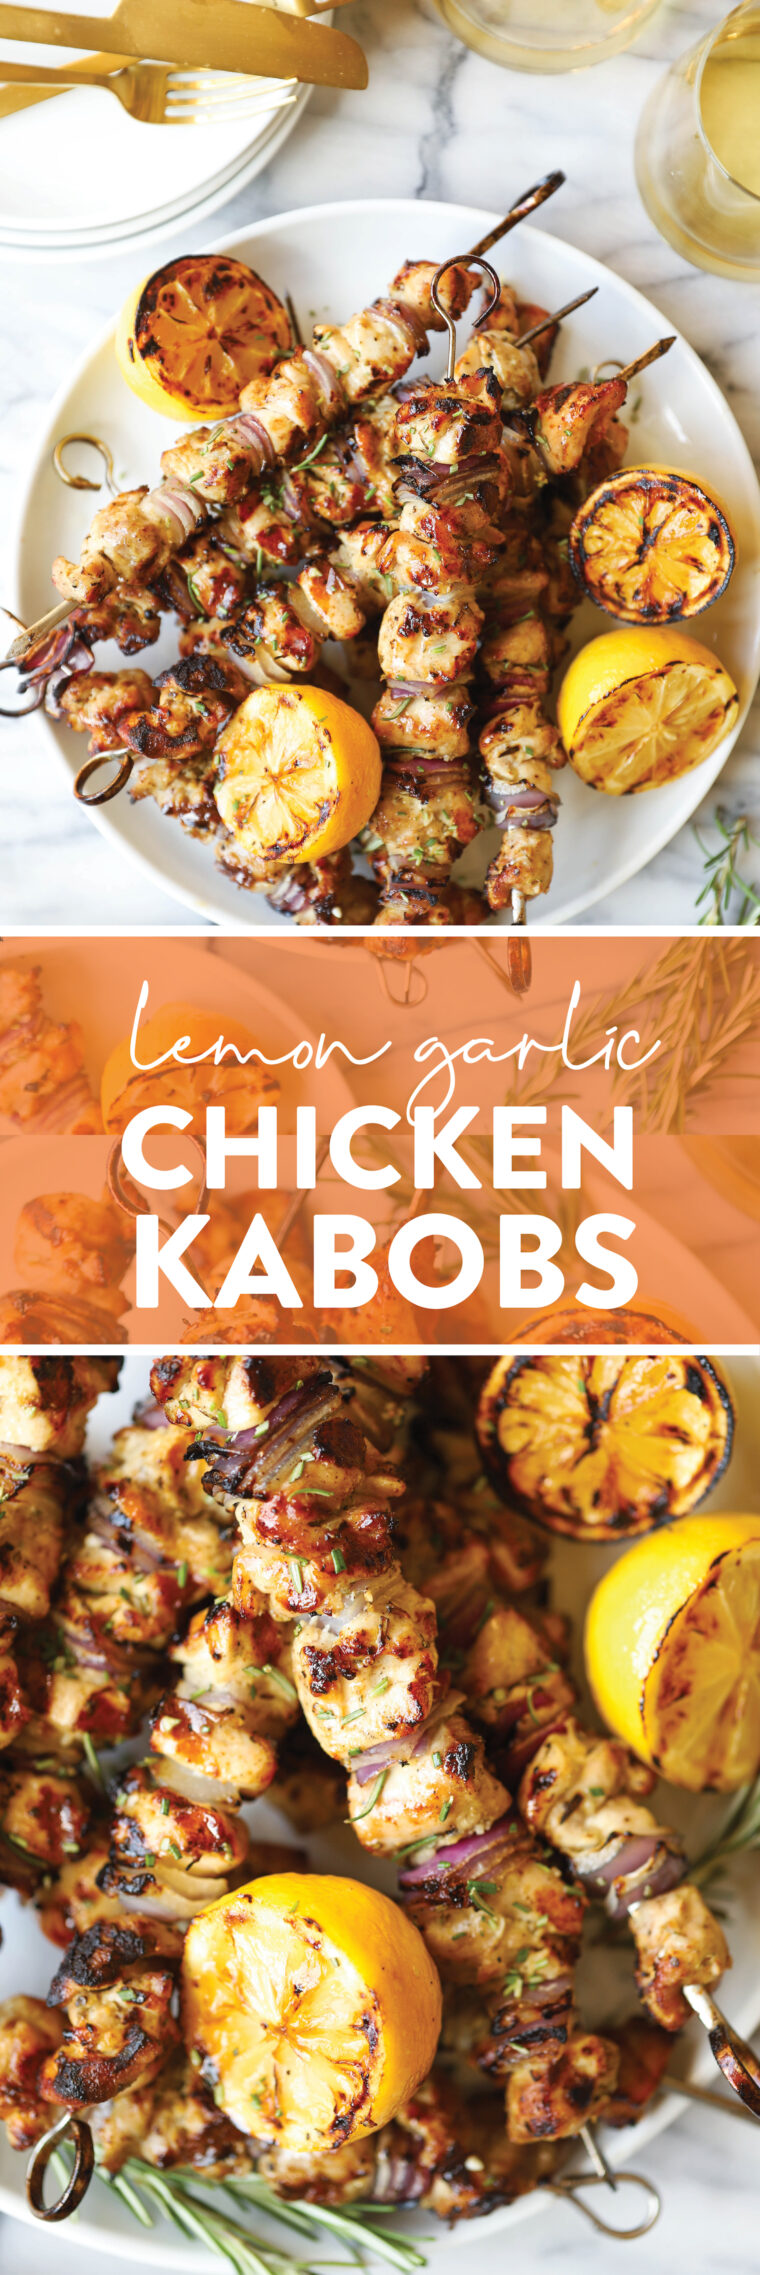 Lemon Garlic Chicken Kabobs - With the most heavenly lemony-garlicky marinade, these kabobs will be made all the time! So tender, so juicy!